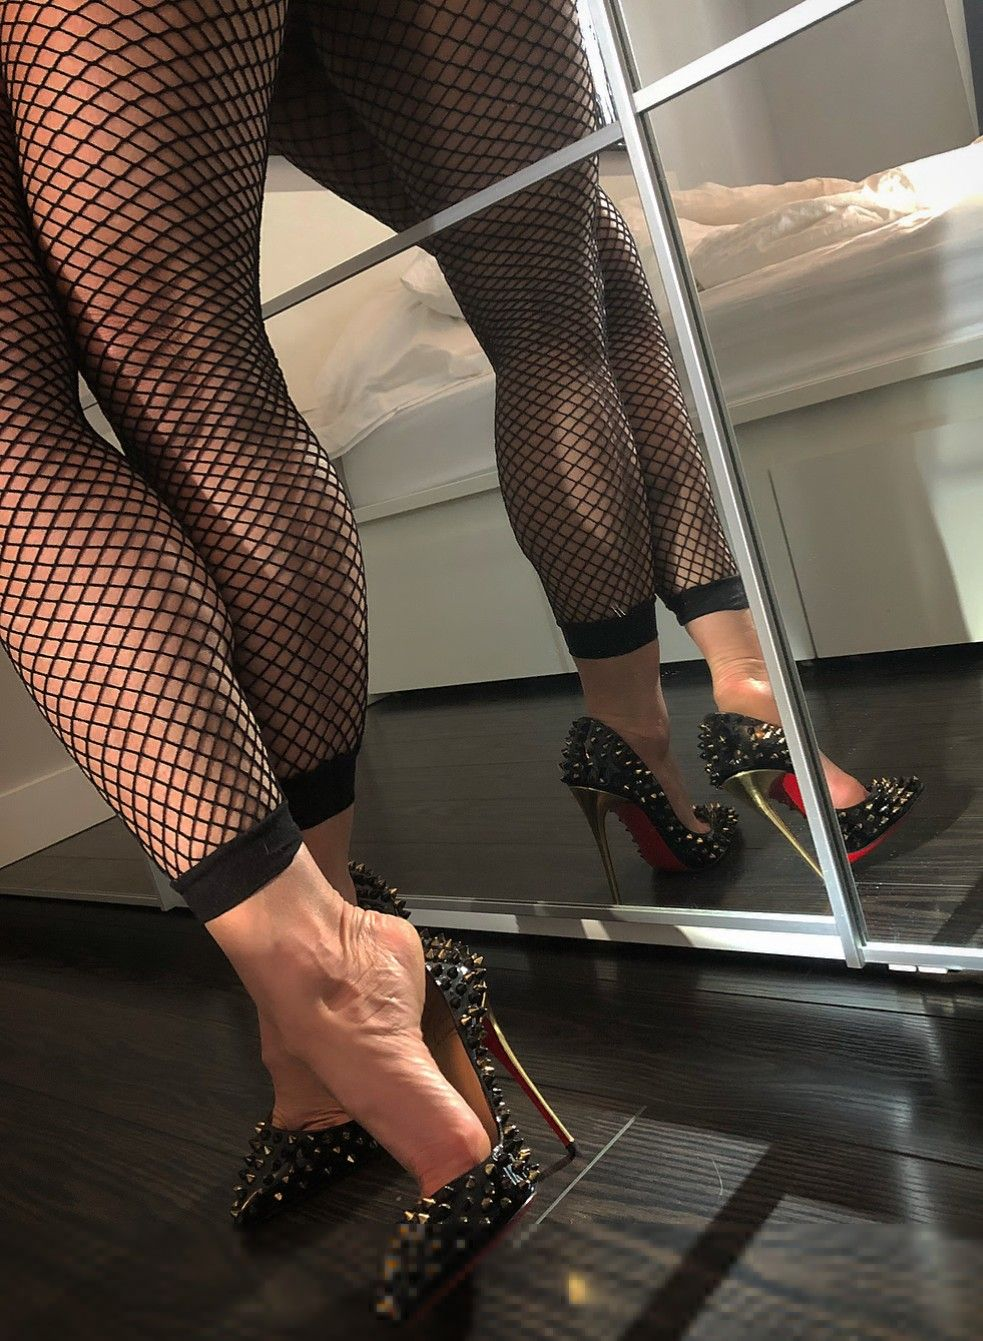 Legs sexy in fishnet stockings free image